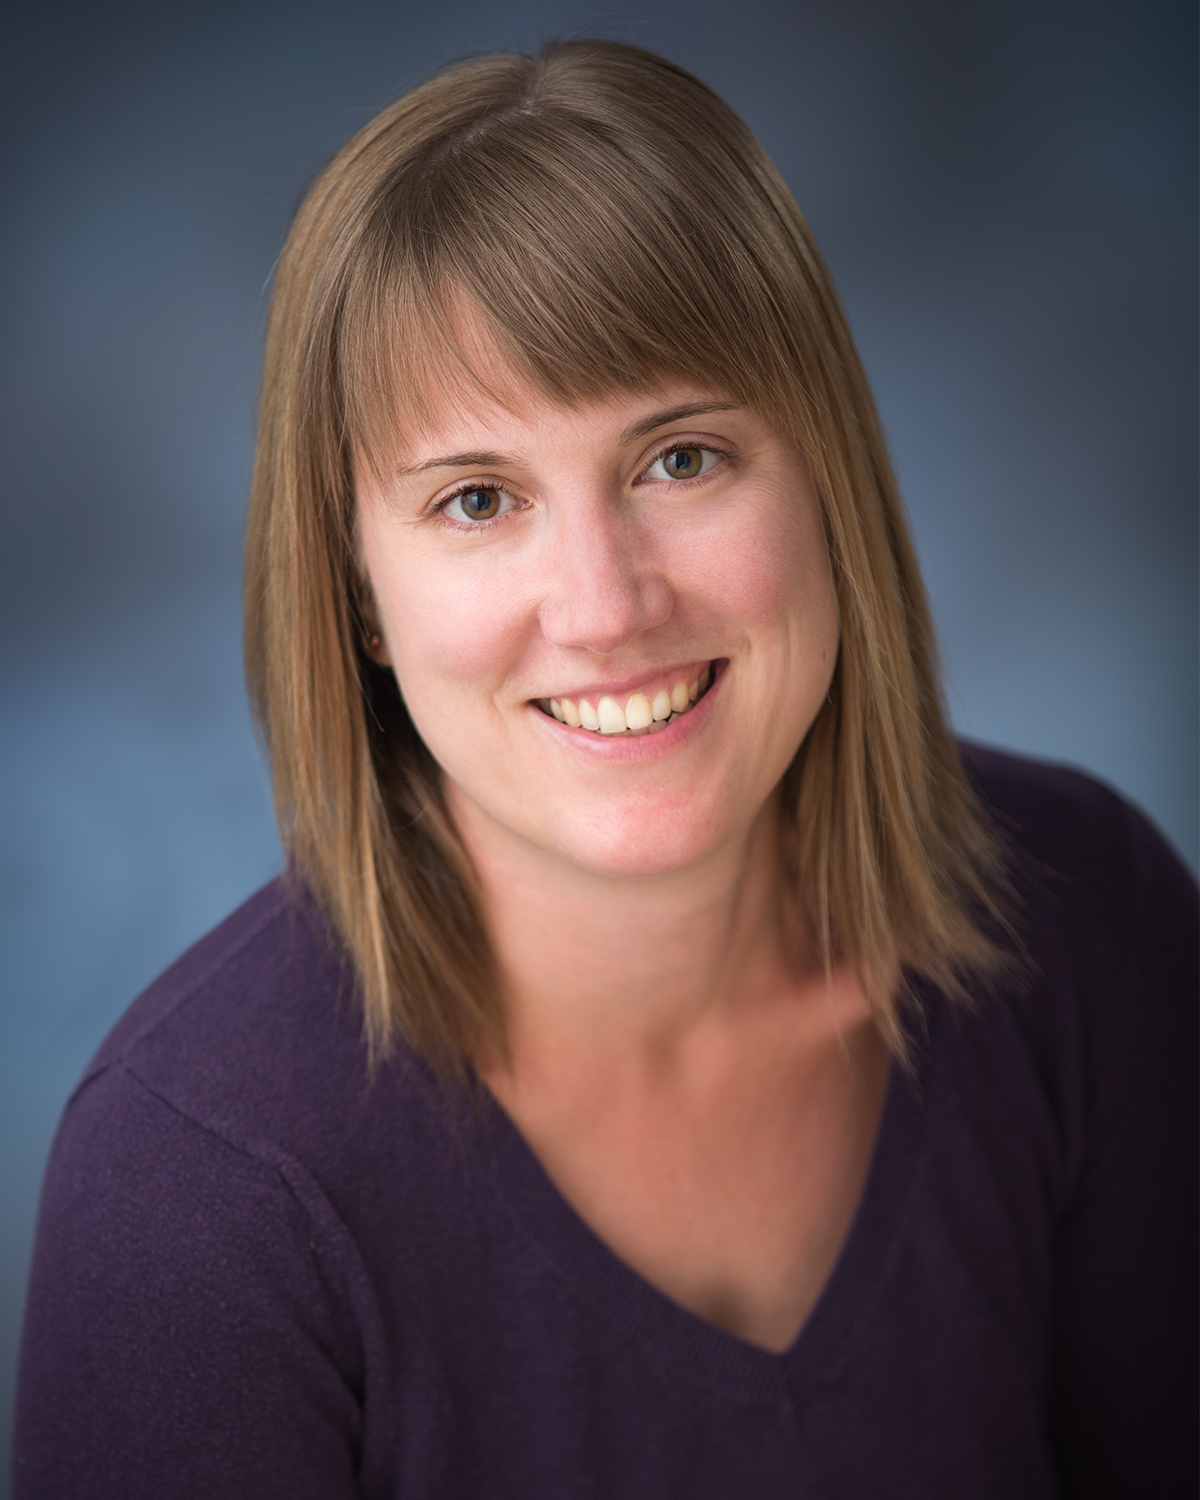 Marisa R. Bryman, CNM, MSN - Nurse-Midwife, Obstetrics and Gynecology, Portland, OR